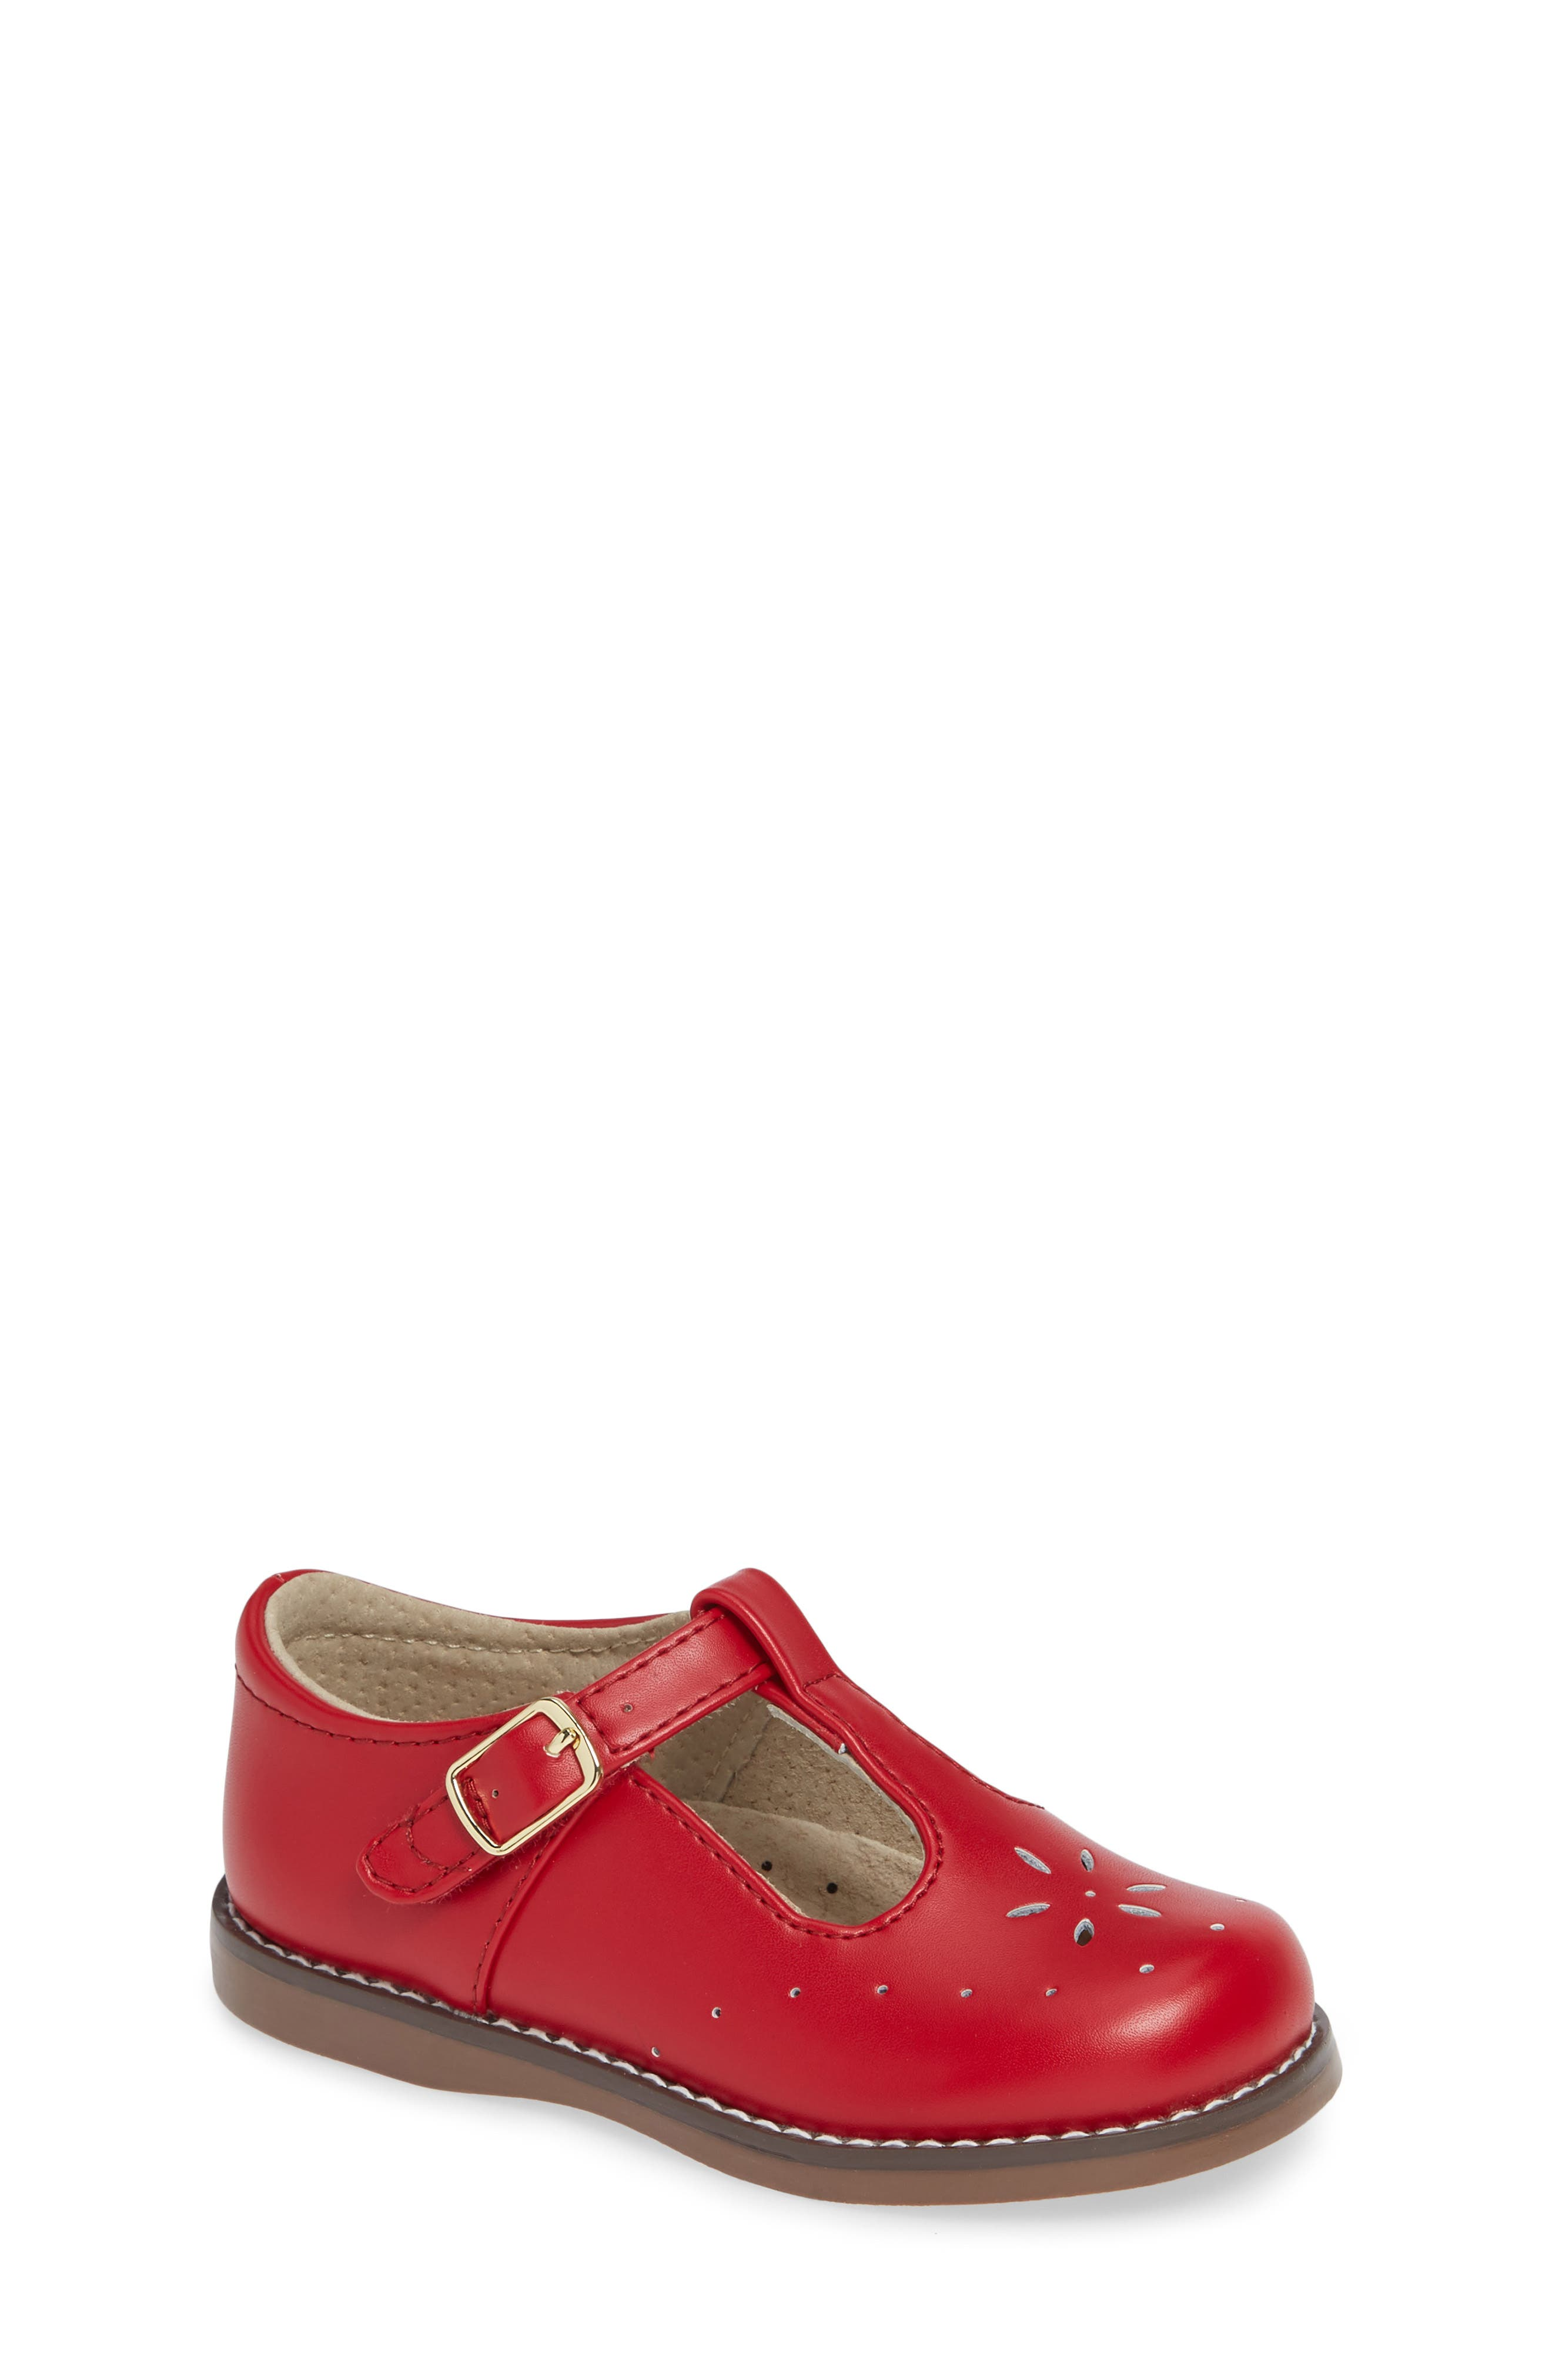 Toddler Girls' Red Shoes (Sizes 7.5-12)